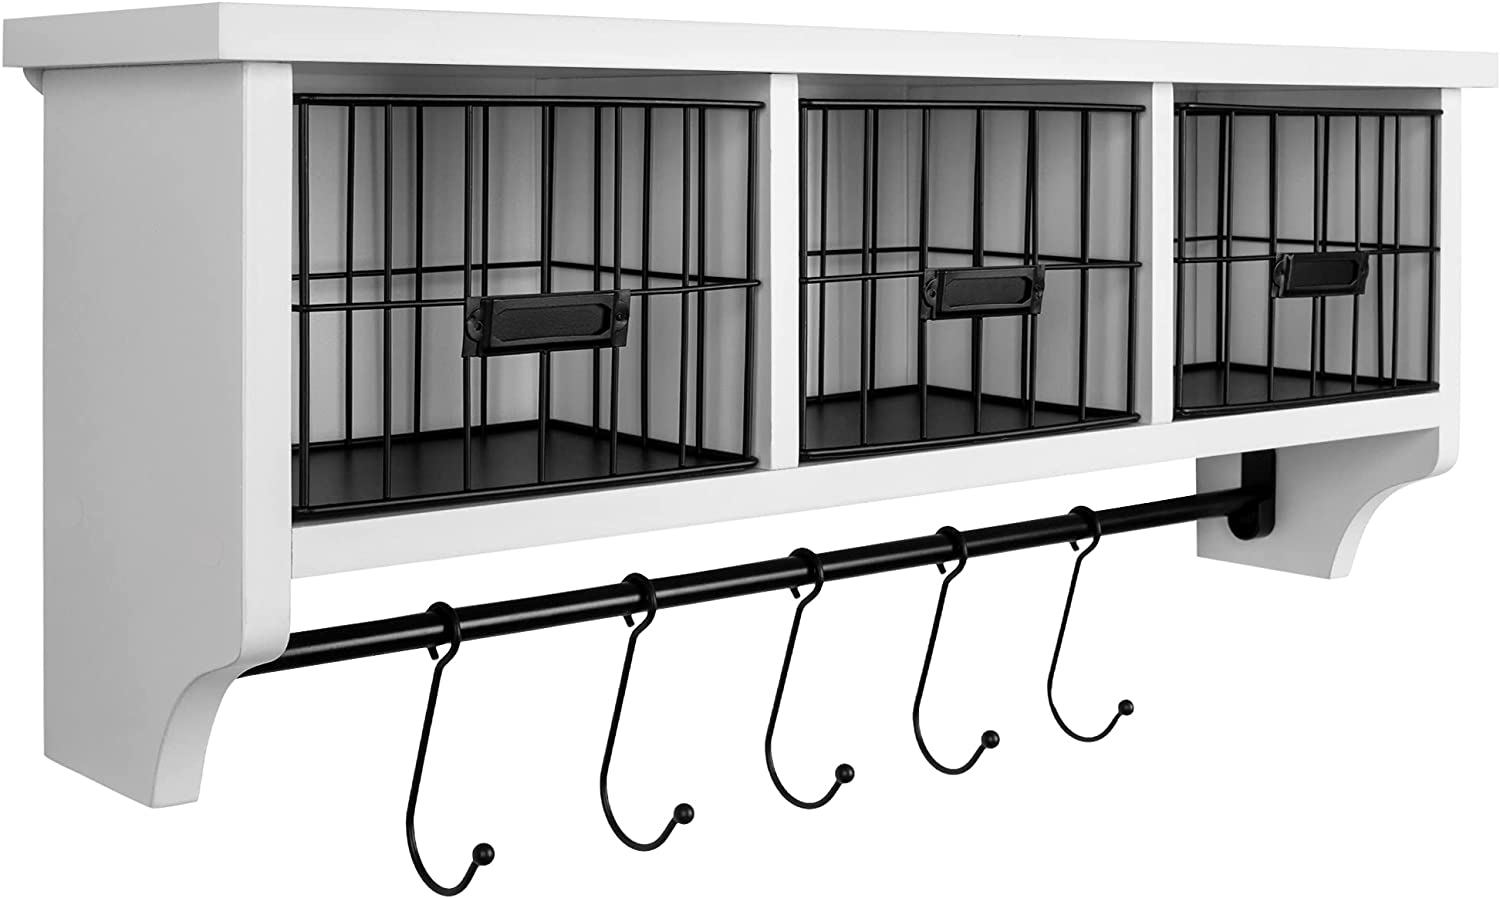 Wood Wall Mounted Shelf with Hooks and Storage Baskets - White Floating Shelves for Storage, Coat Rack, Coffee Bar Accessories - Kitchen Coffee Mug Holder, Entryway and Bathroom Organizer